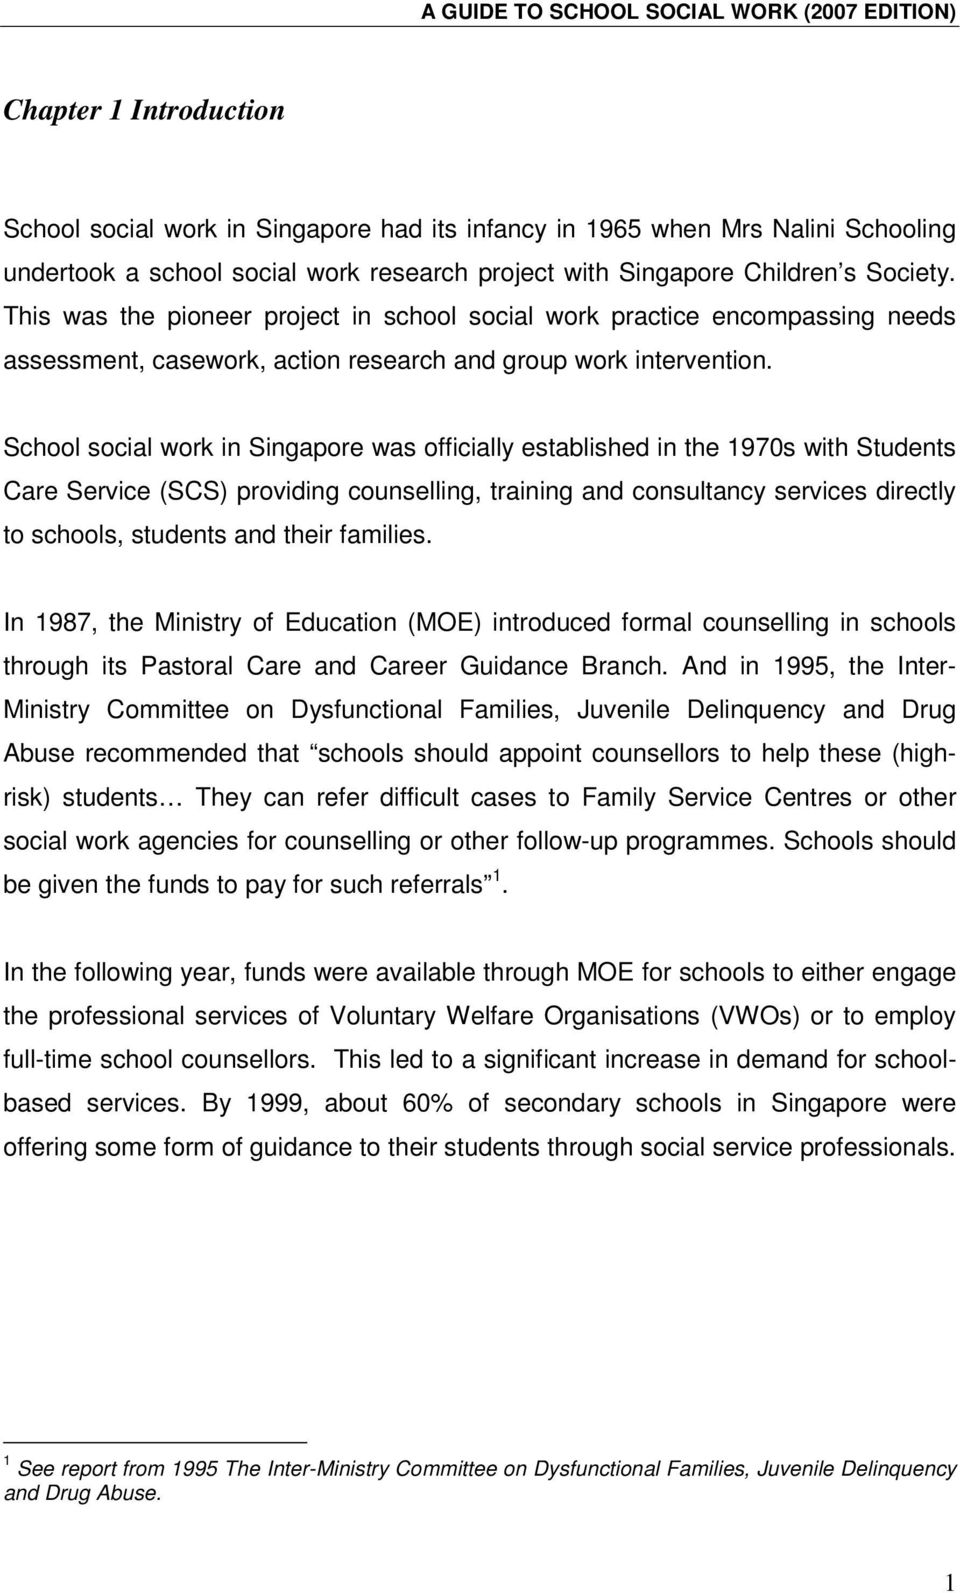 School social work in Singapore was officially established in the 1970s with Students Care Service (SCS) providing counselling, training and consultancy services directly to schools, students and